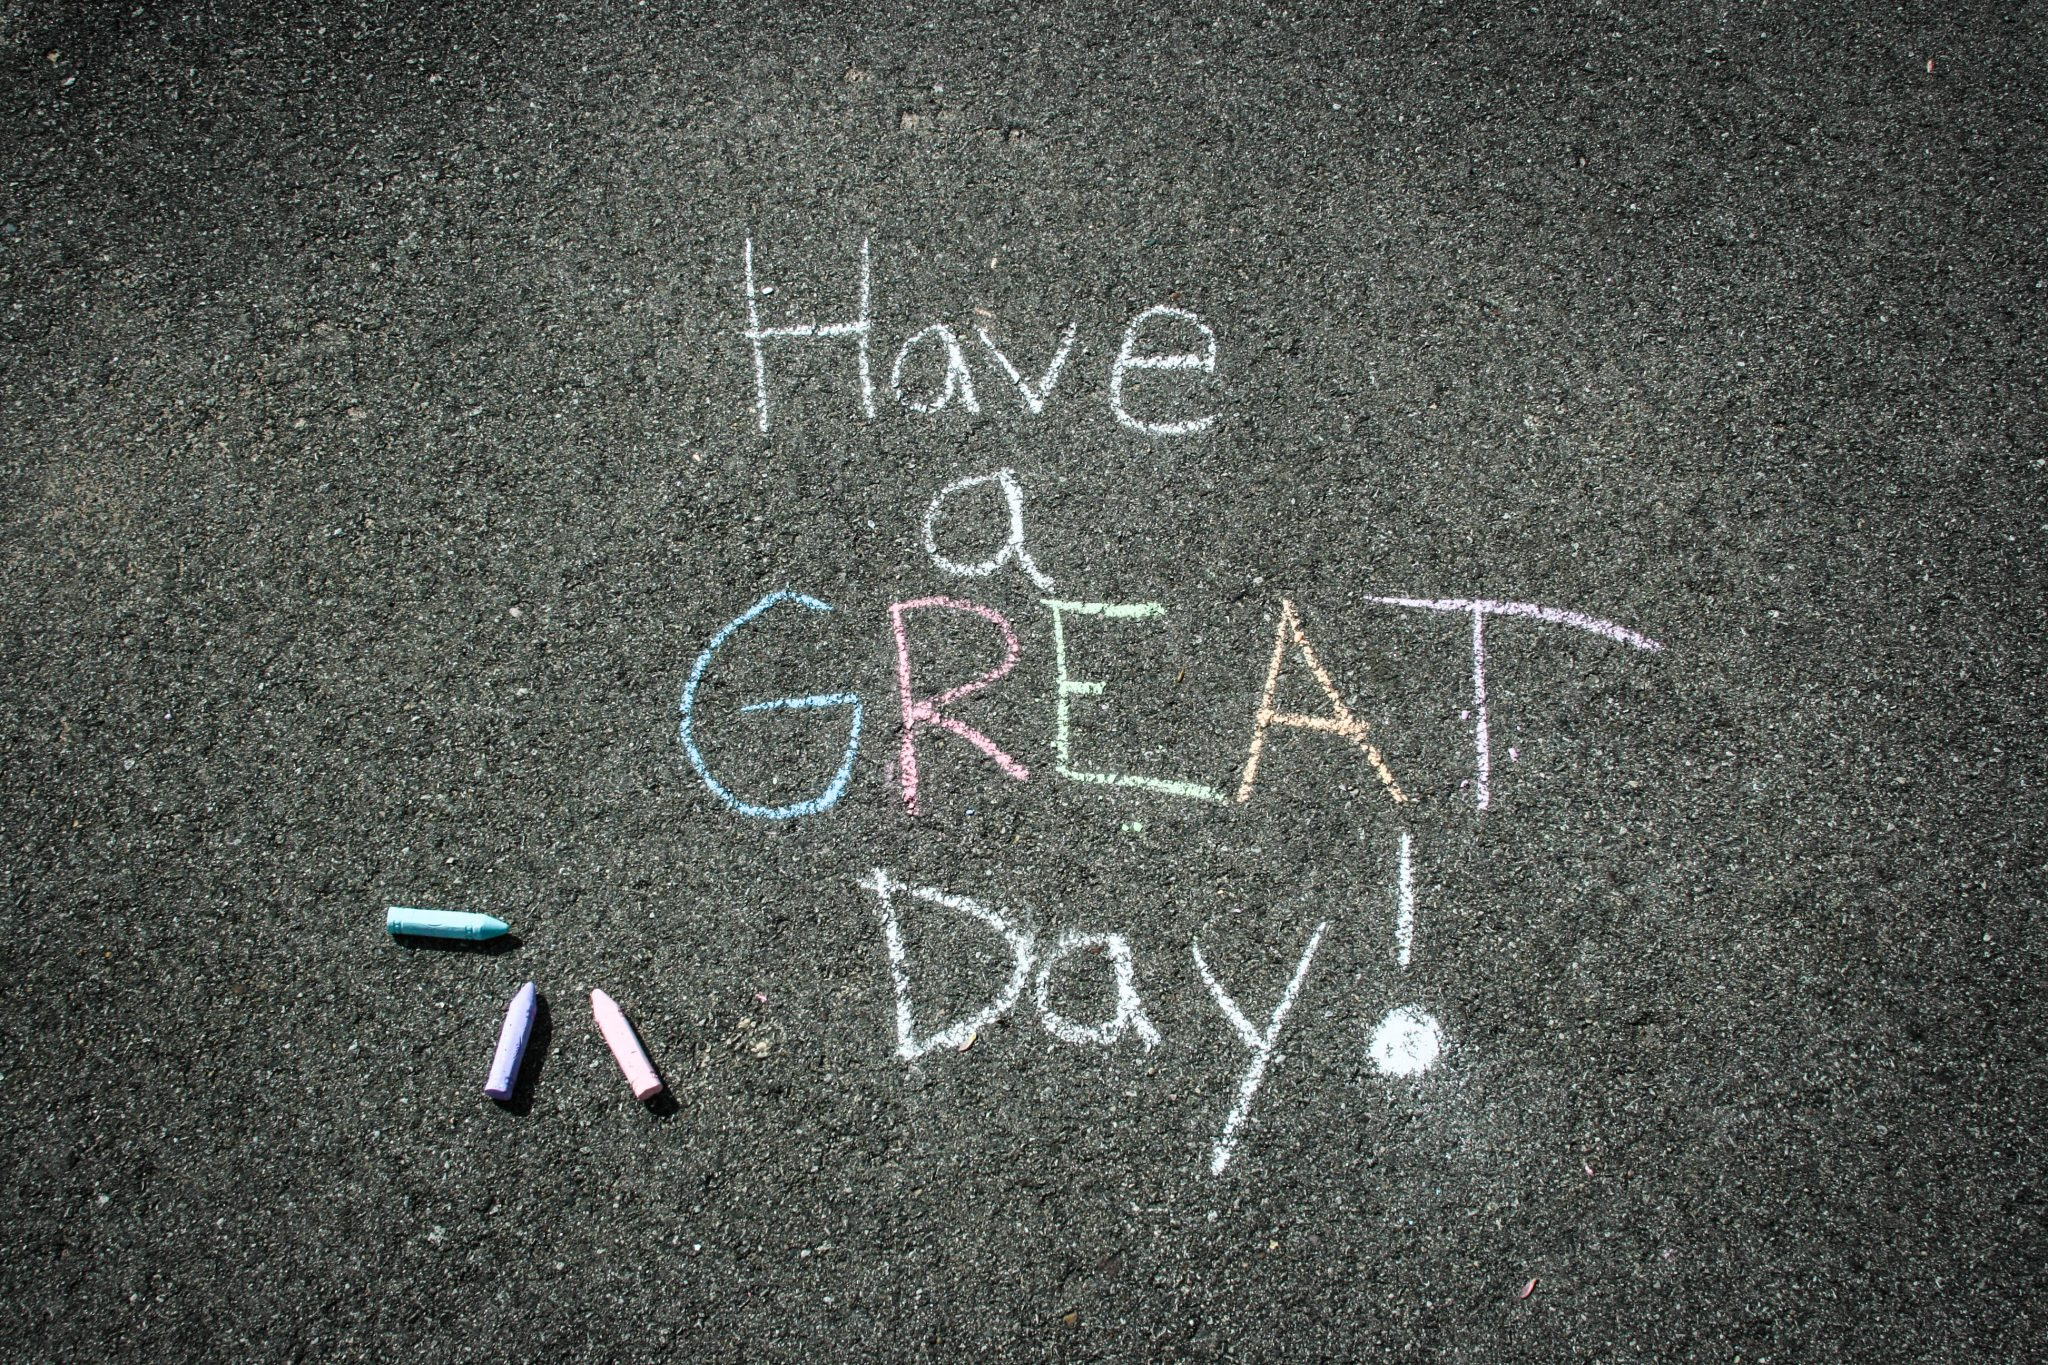 """How do you make someone smile? Leave a chalk message on a walkway that reads, """"Have a great day!"""""""